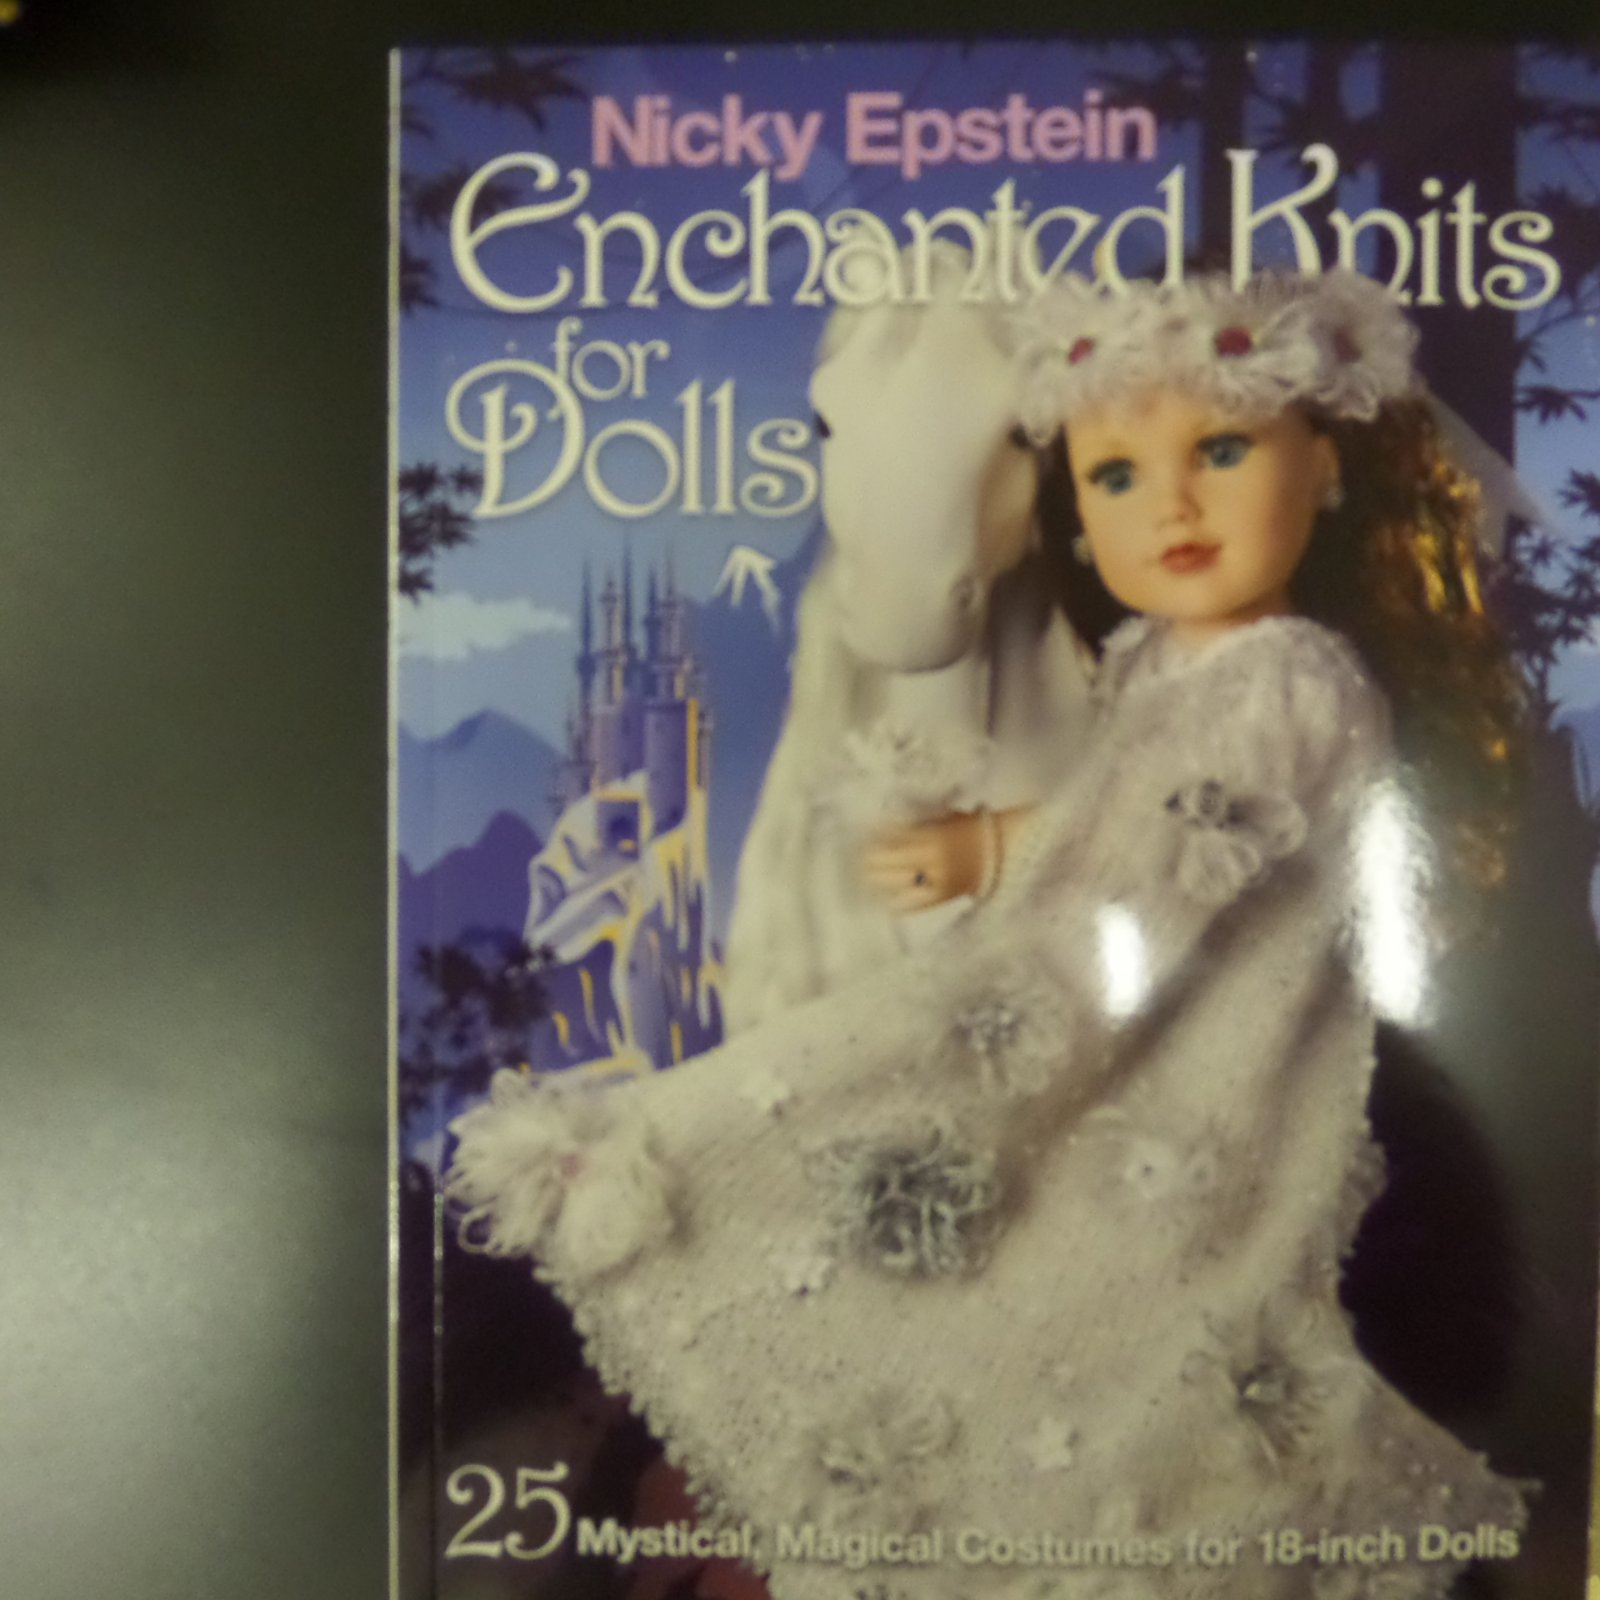 Enchanted Knits for Dolls by Nicky Epstein